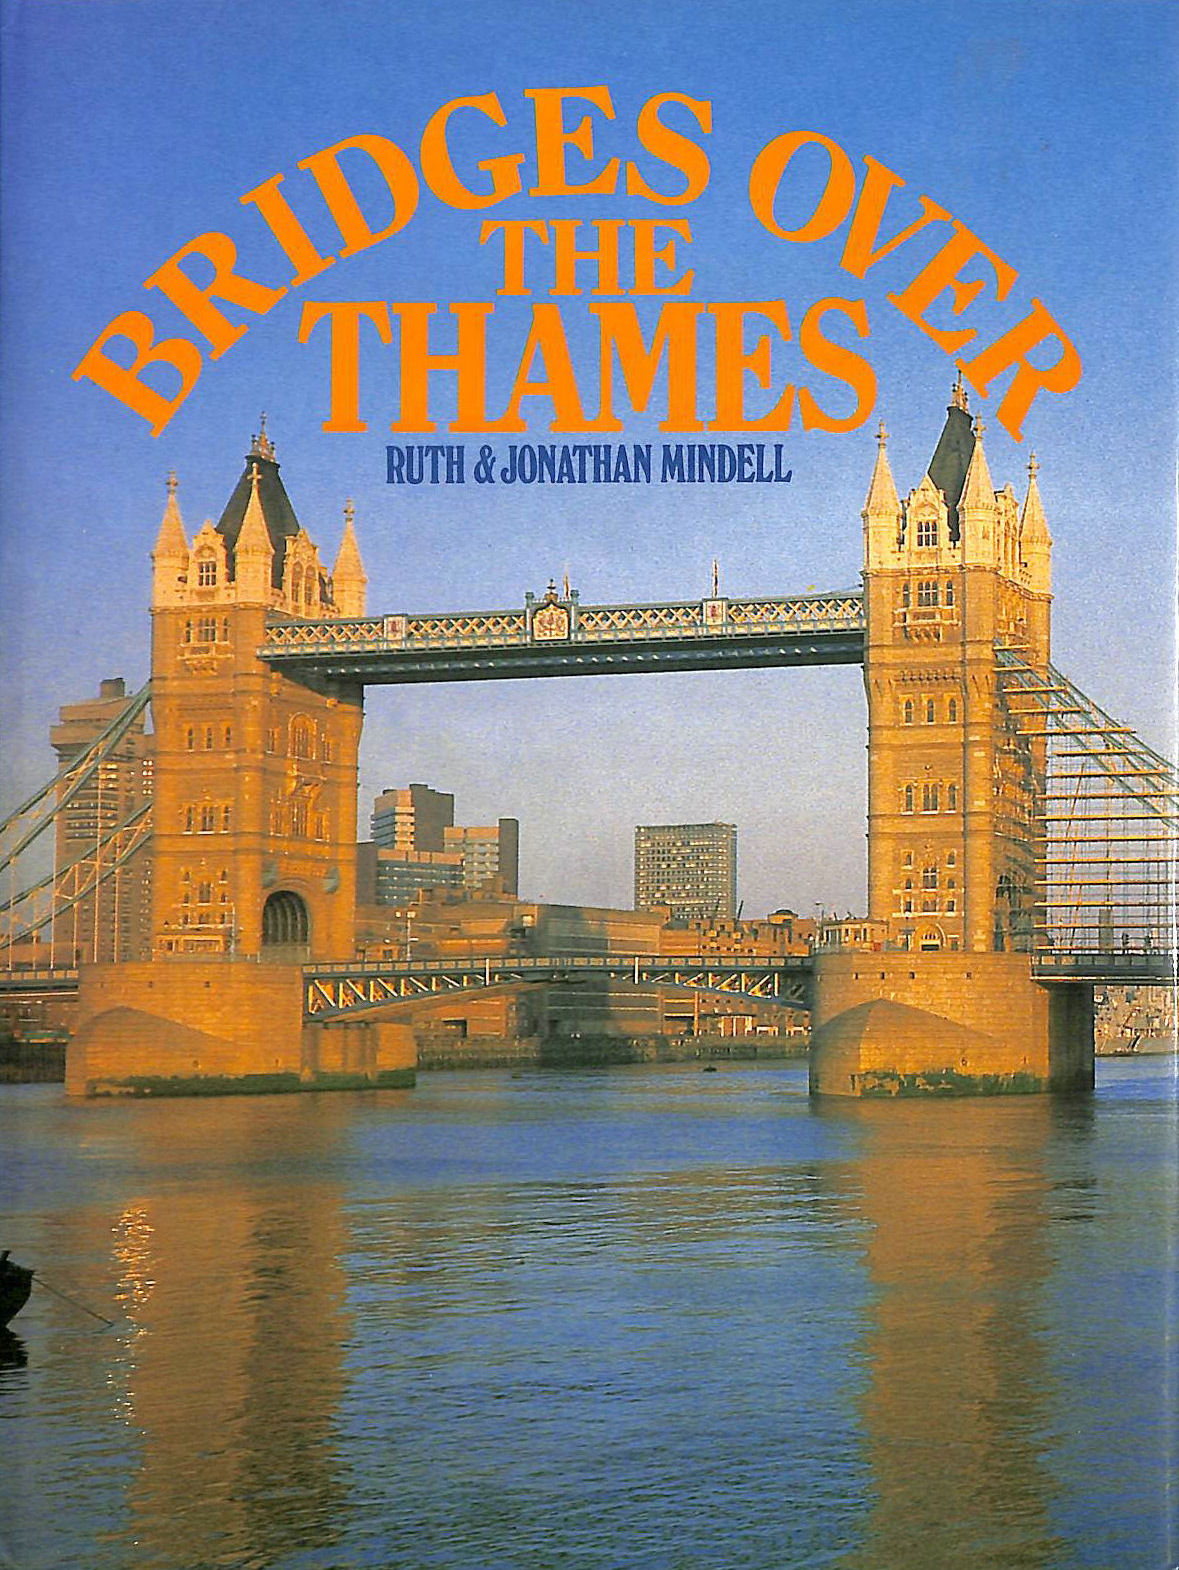 Image for Bridges Over the Thames